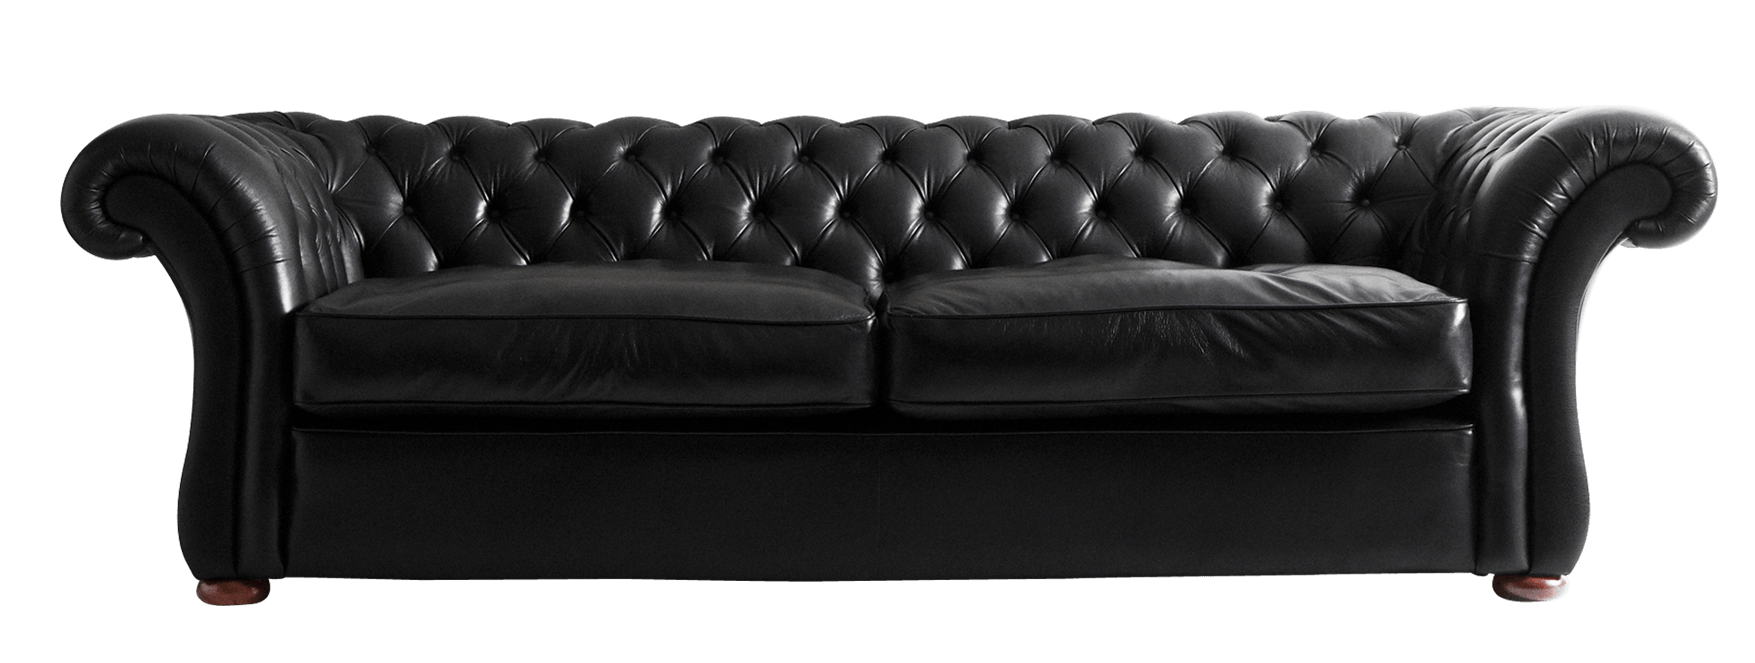 png couch